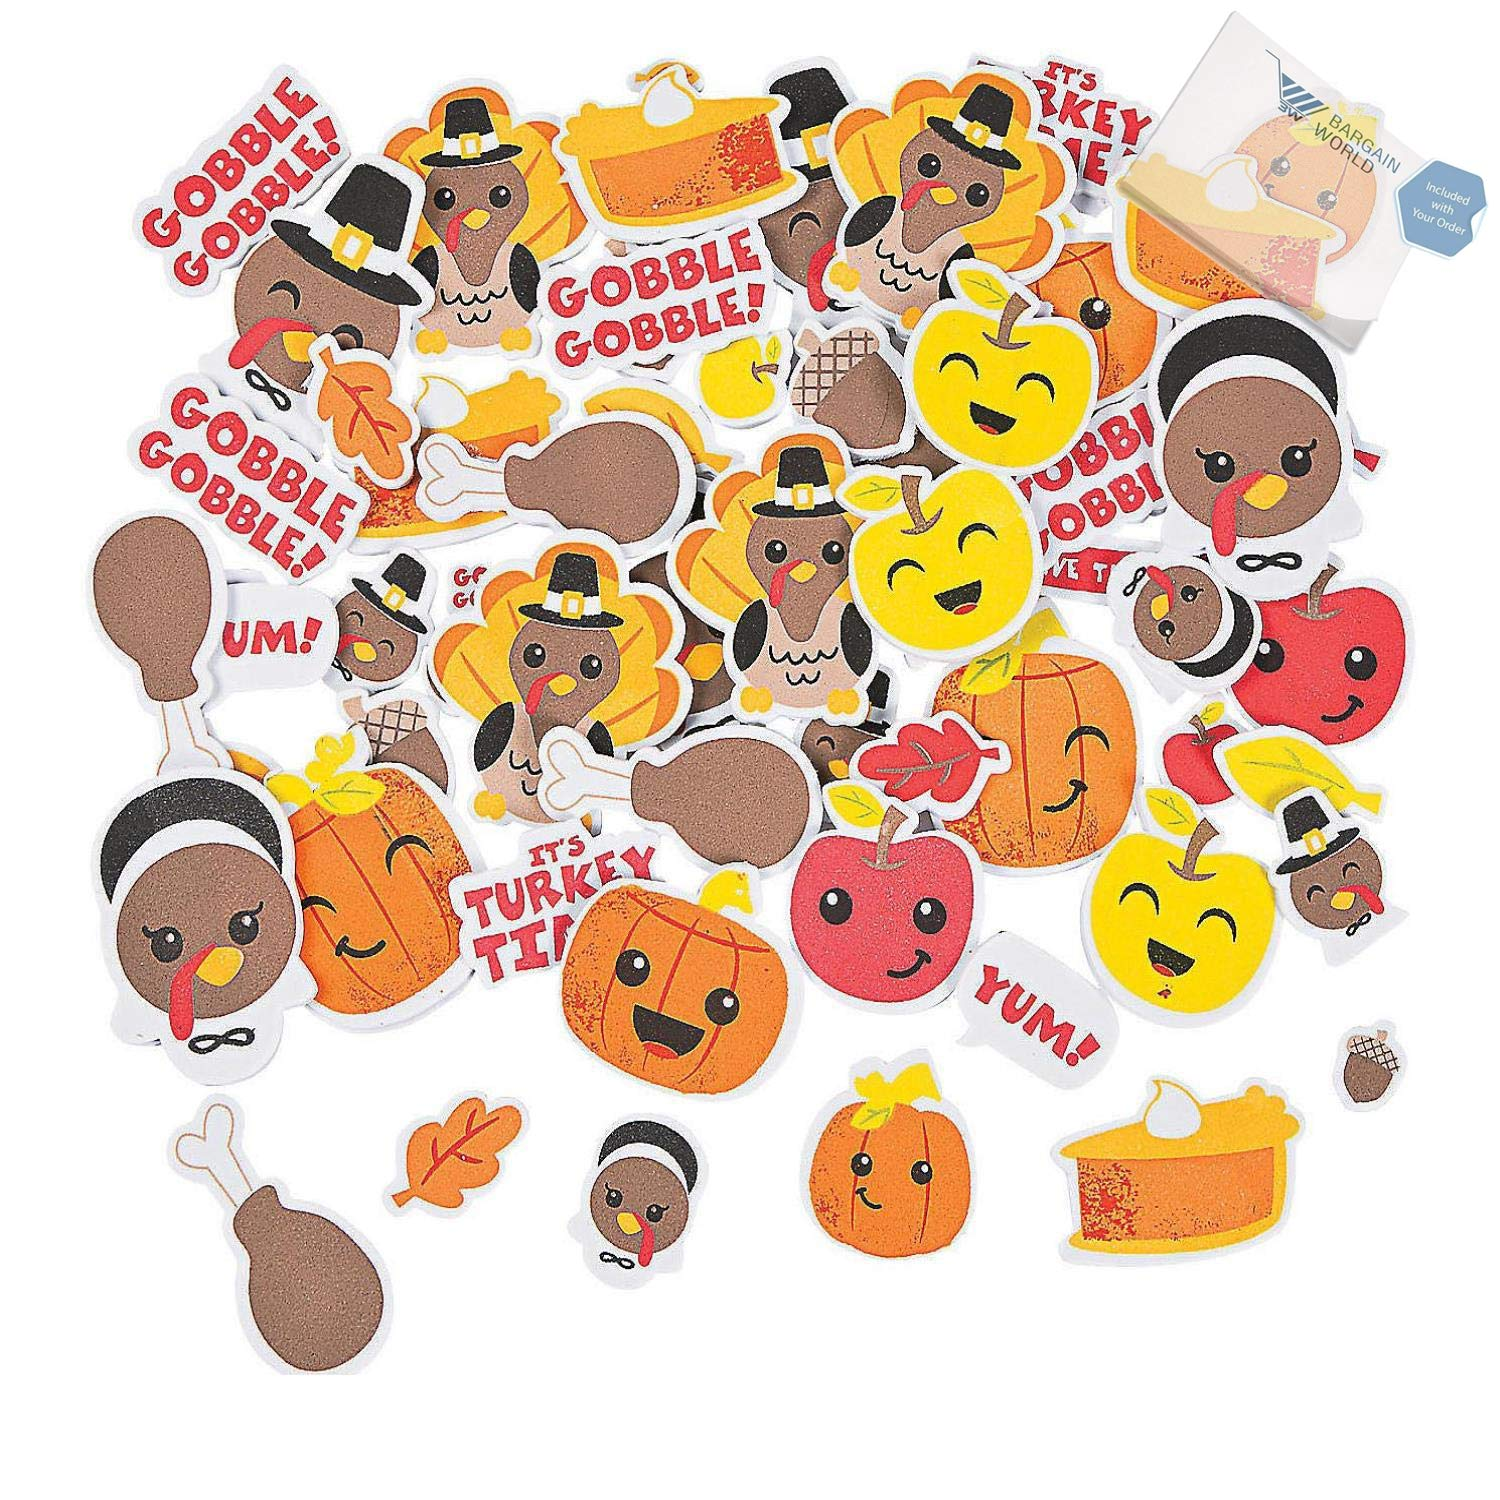 Bargain World Silly Thanksgiving Self-Adhesive Shapes (With Sticky Notes)